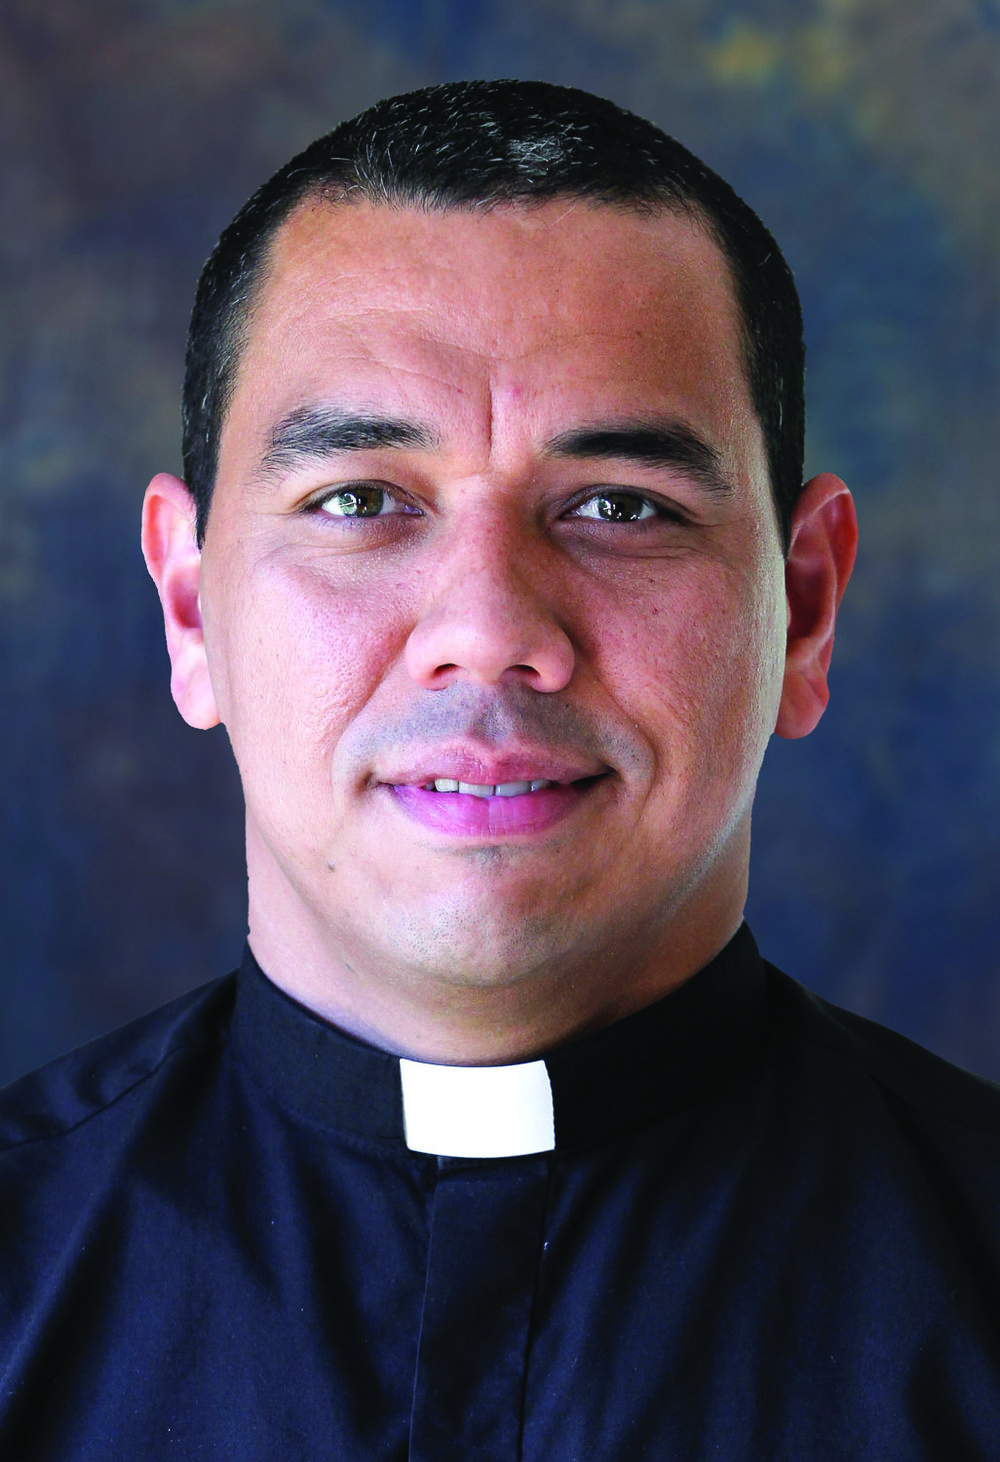 Father Elkin Gonzalez Headshot.jpg